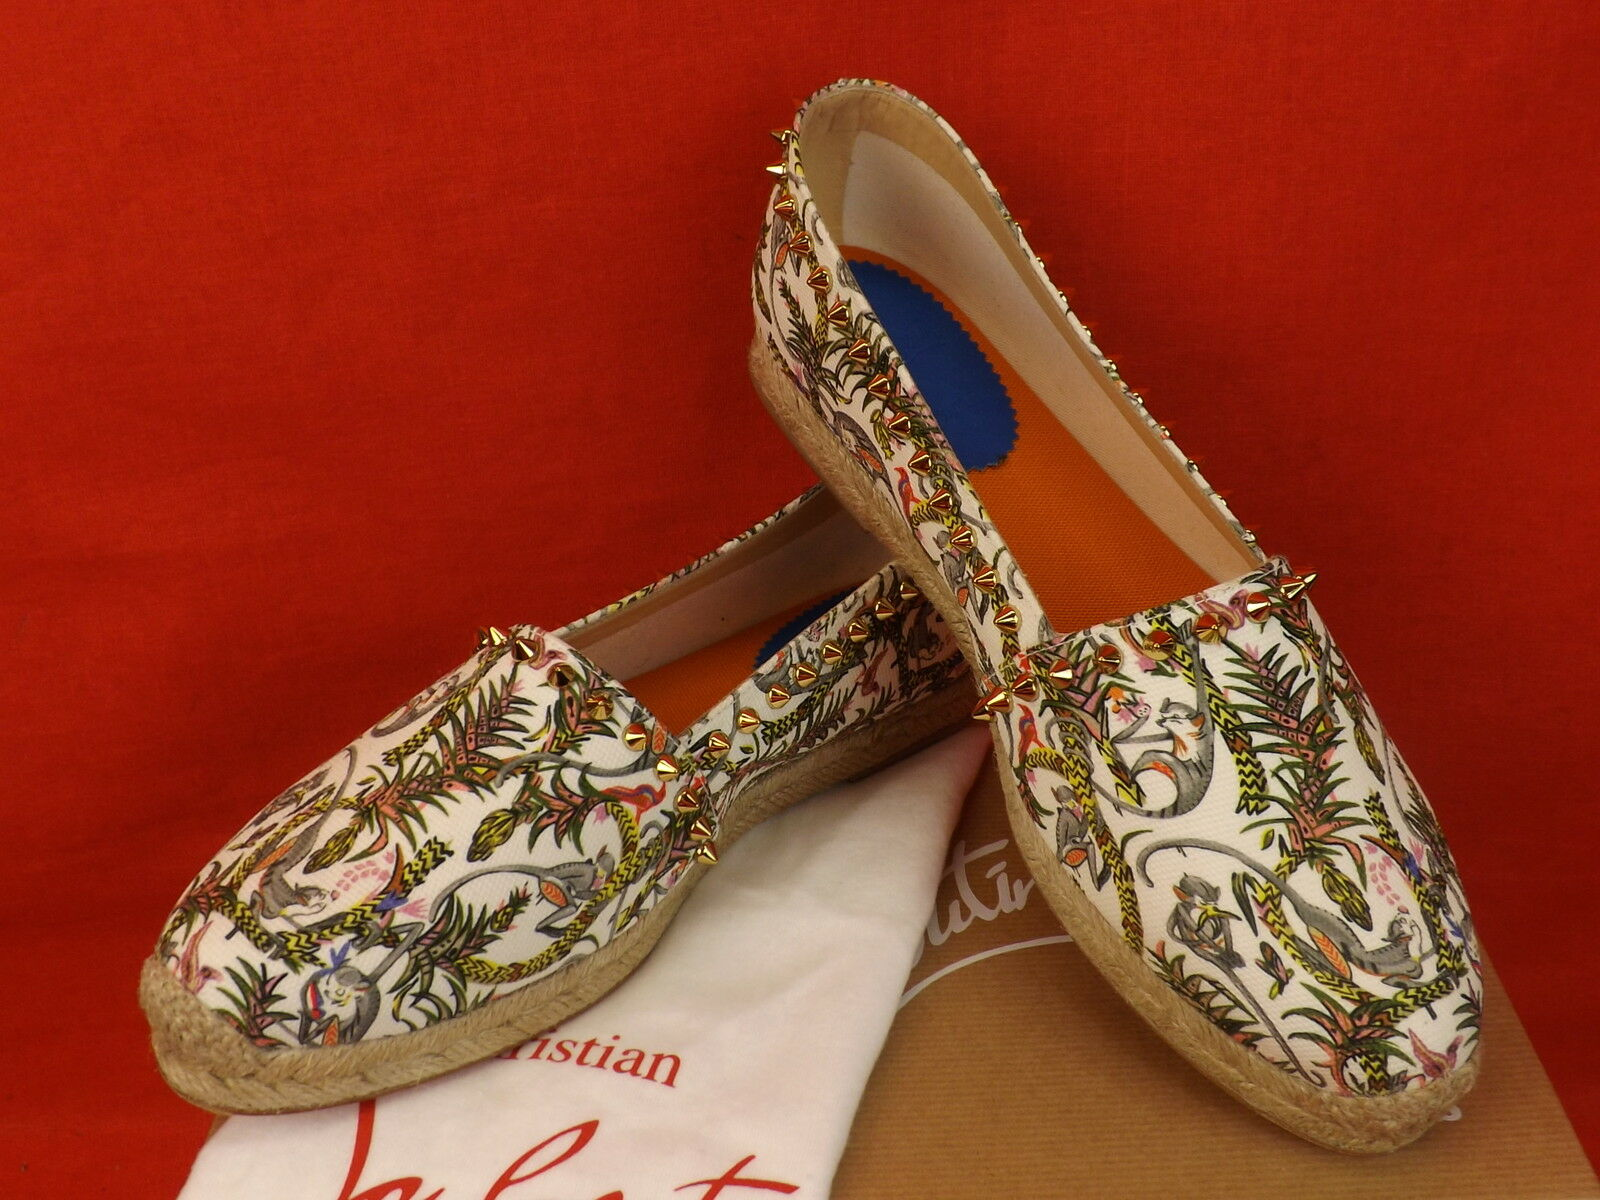 New in Box Louboutin Ivoire Ares Toile or or or Tone Rivets Pointes Espadrilles Flats 39 b08e09